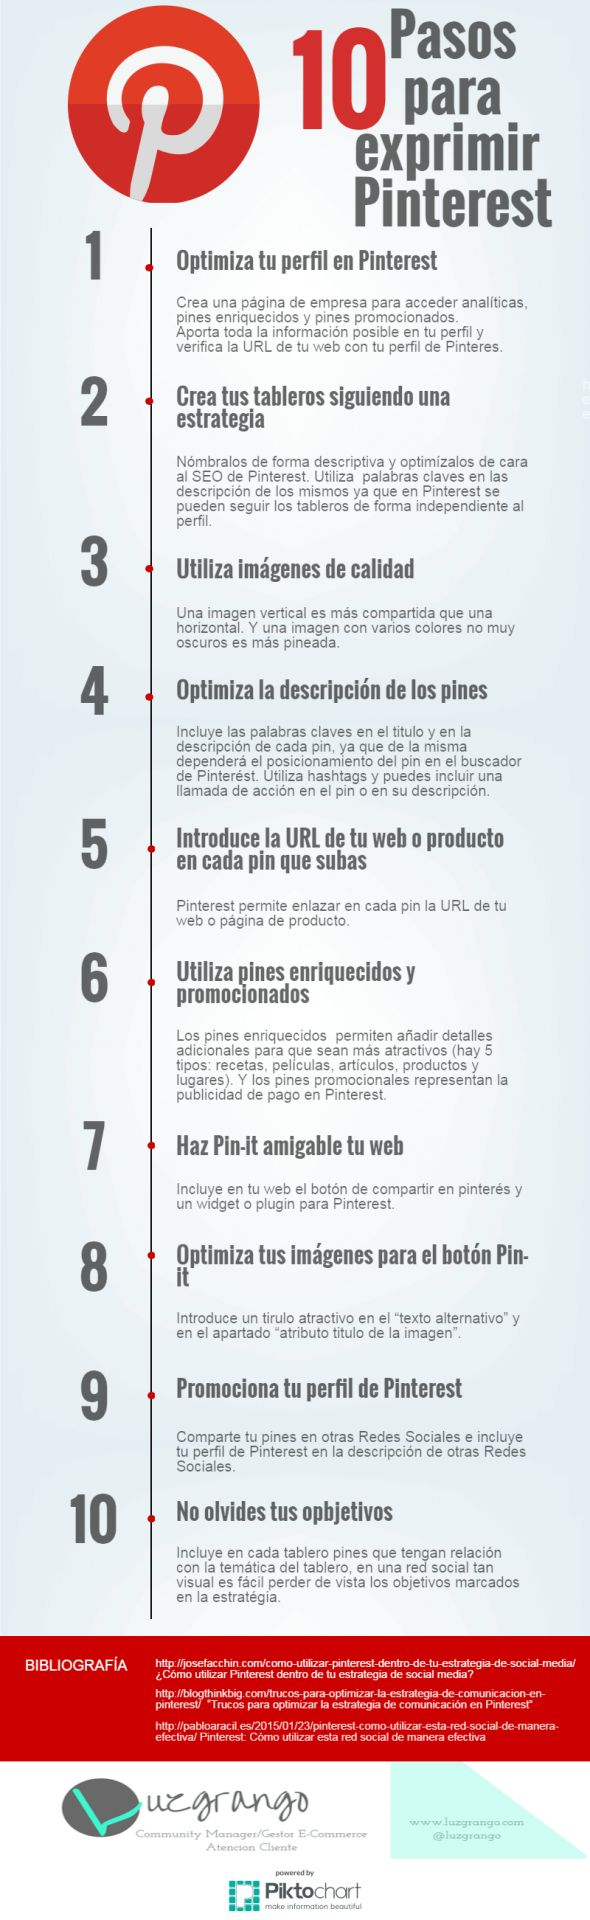 10 pasos para sacarle el máximo partido a pinterest.• Optimiza tu perfil. • Optimiza tus tableros. • Imágenes de calidad. • Utiliza buenas descripciones para tus pines. • Enlace tus pines con tu...